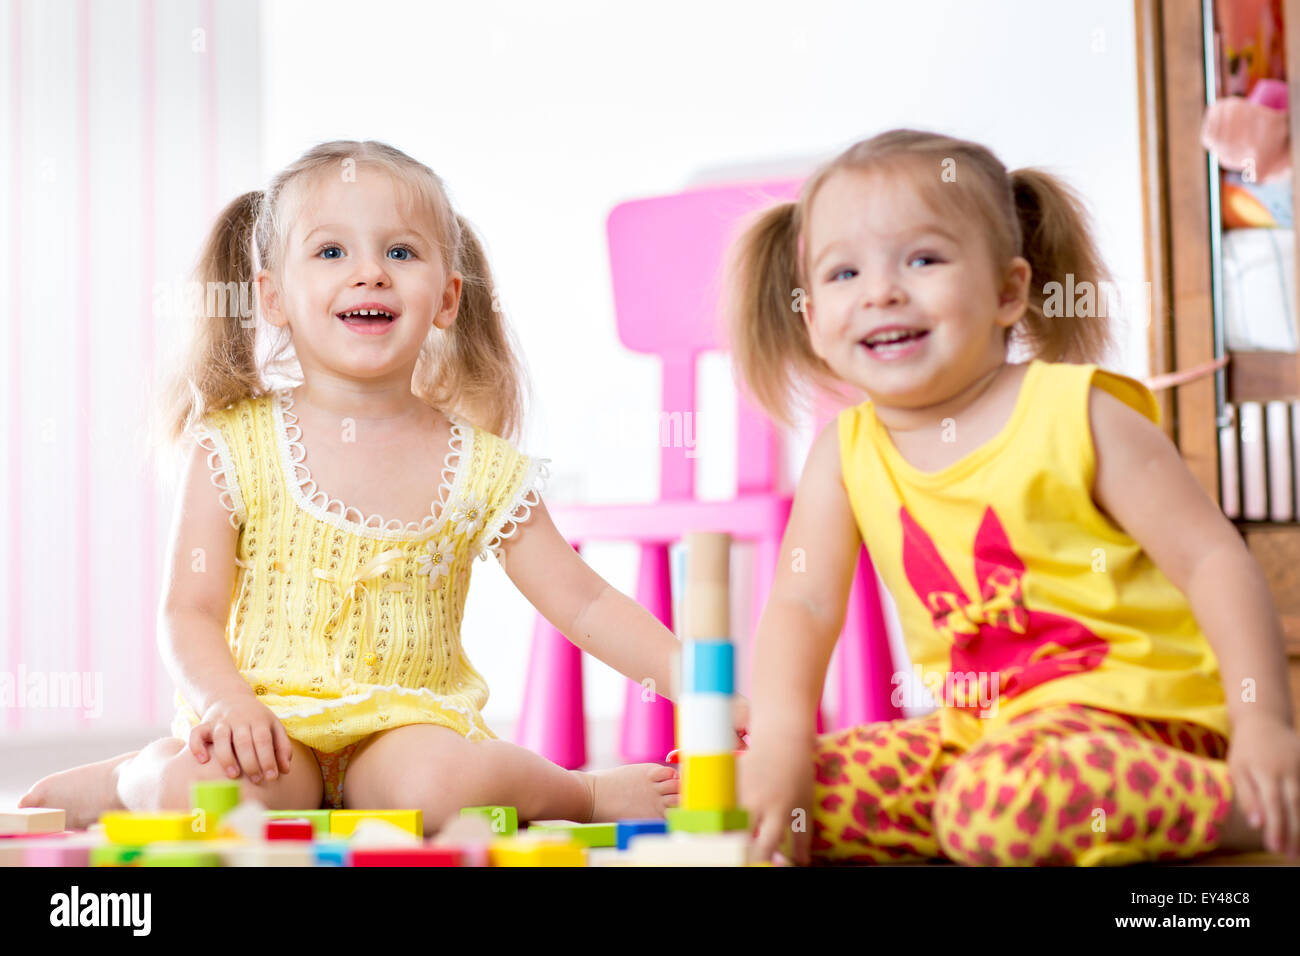 Kids playing with wooden blocks - Stock Image